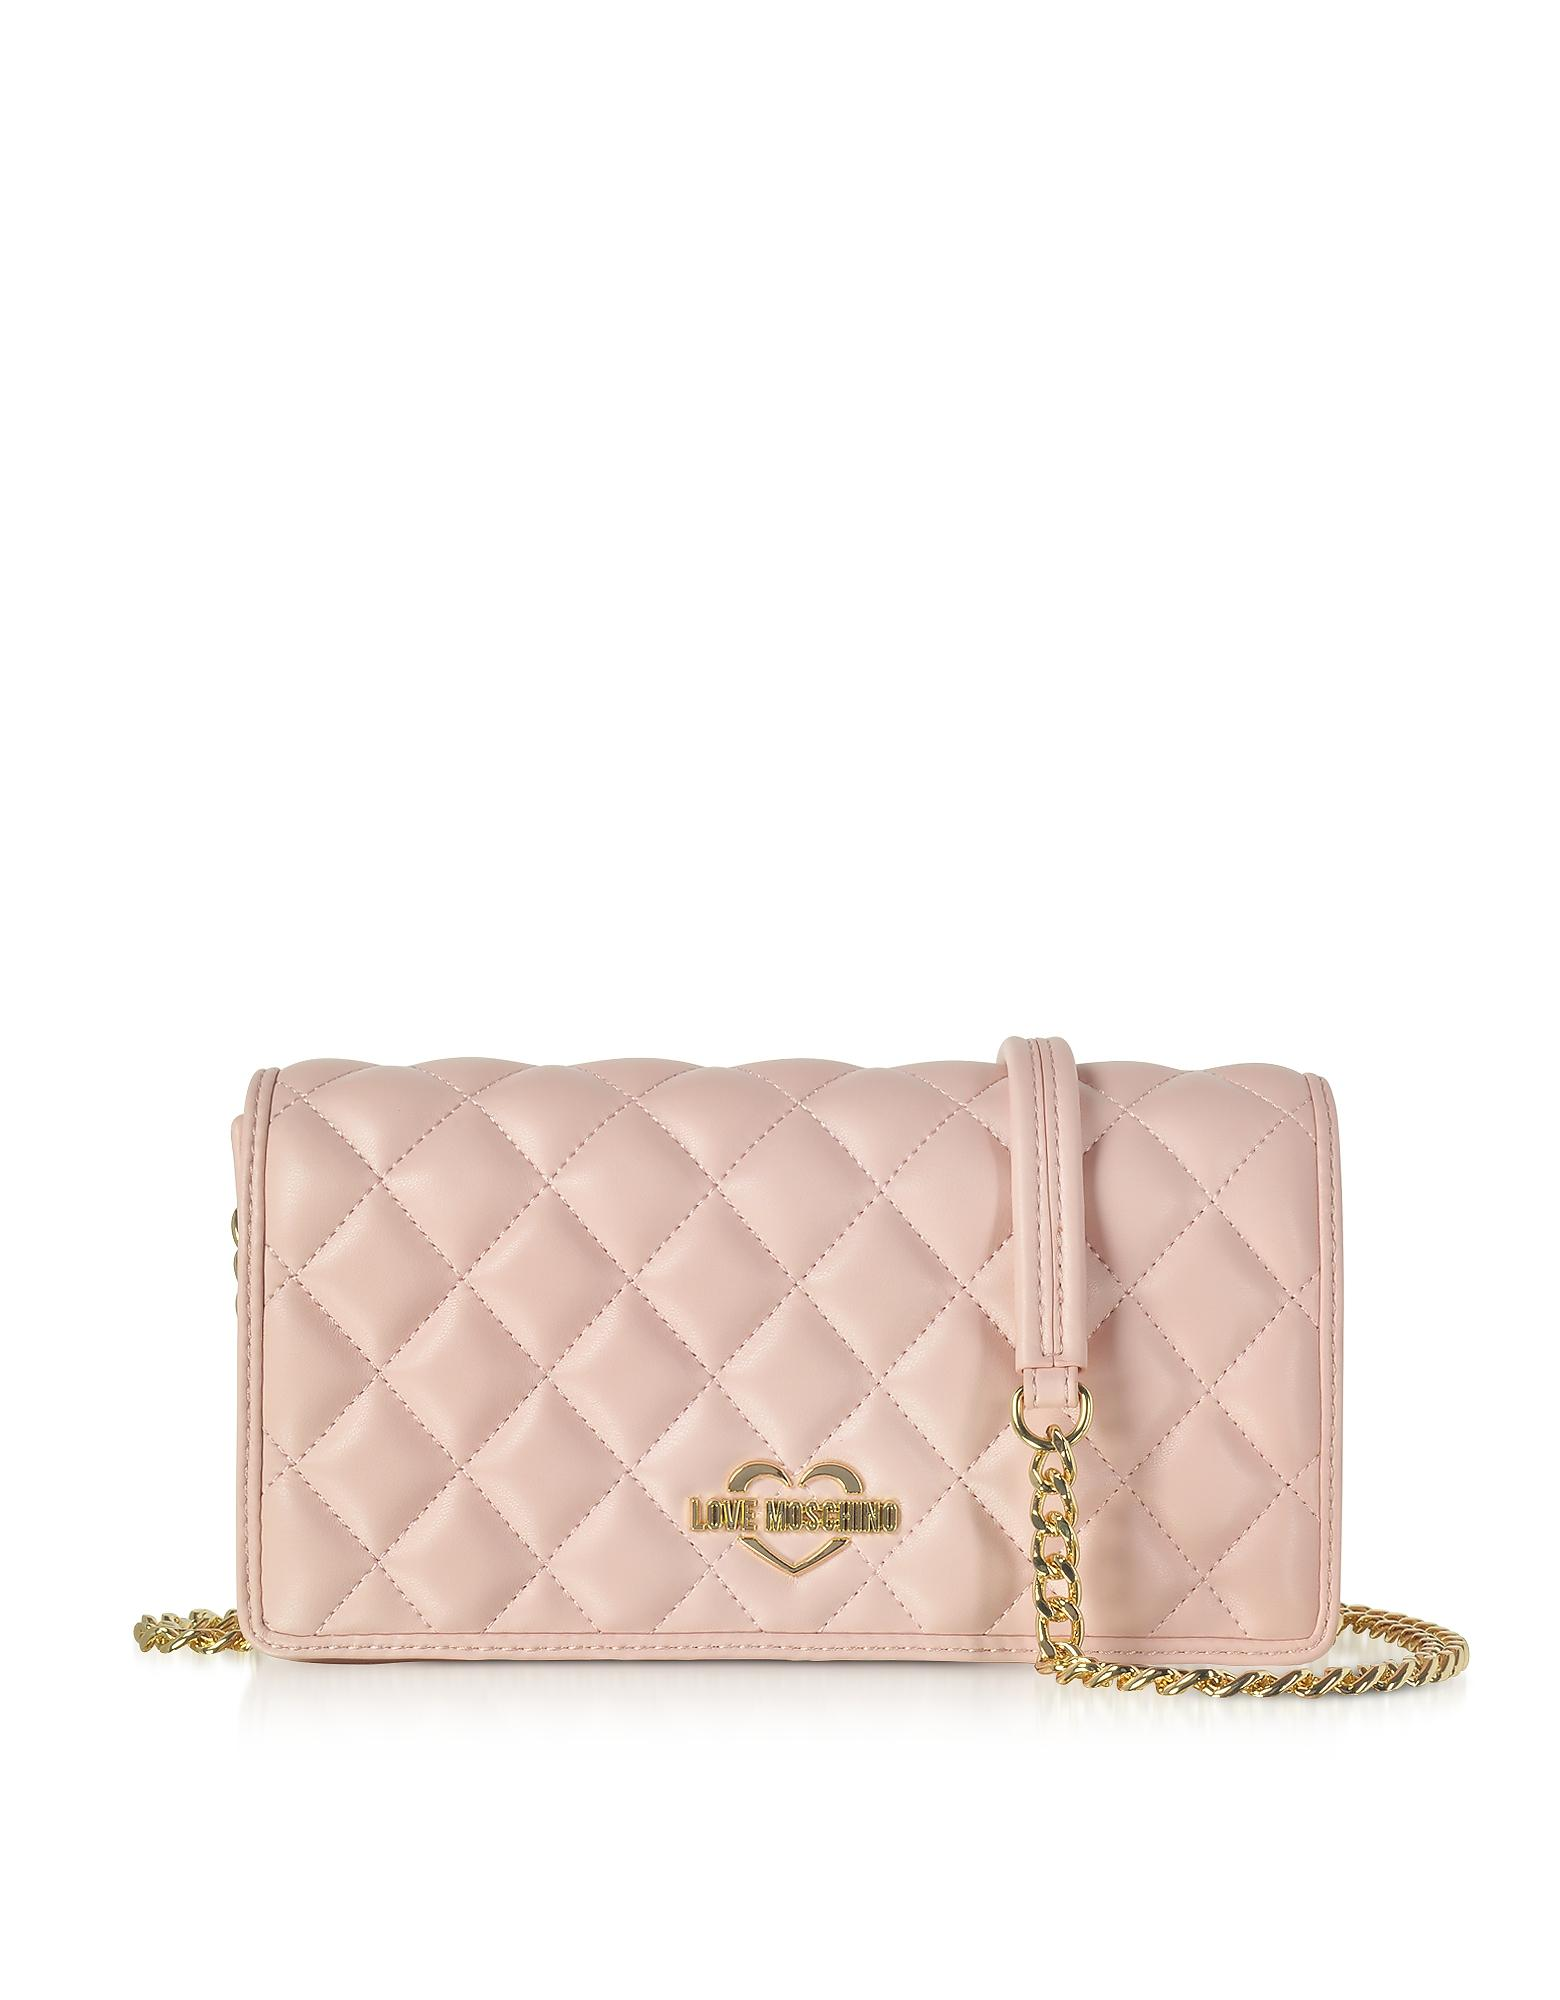 dae380ba29 Love Moschino Pink Superquilted Eco-Leather Clutch W/Shoulder Strap ...